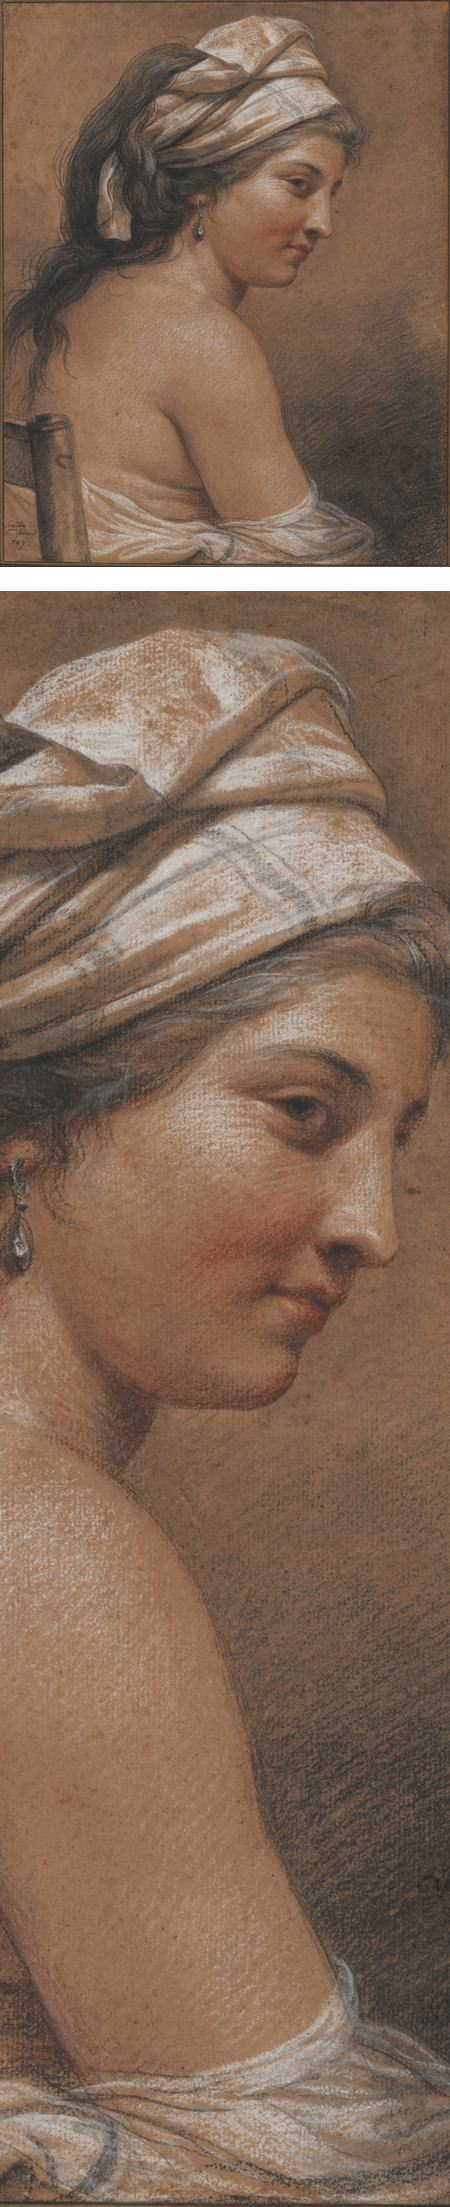 Adelaide Labille-Guiard, trois crayon chalk drawing